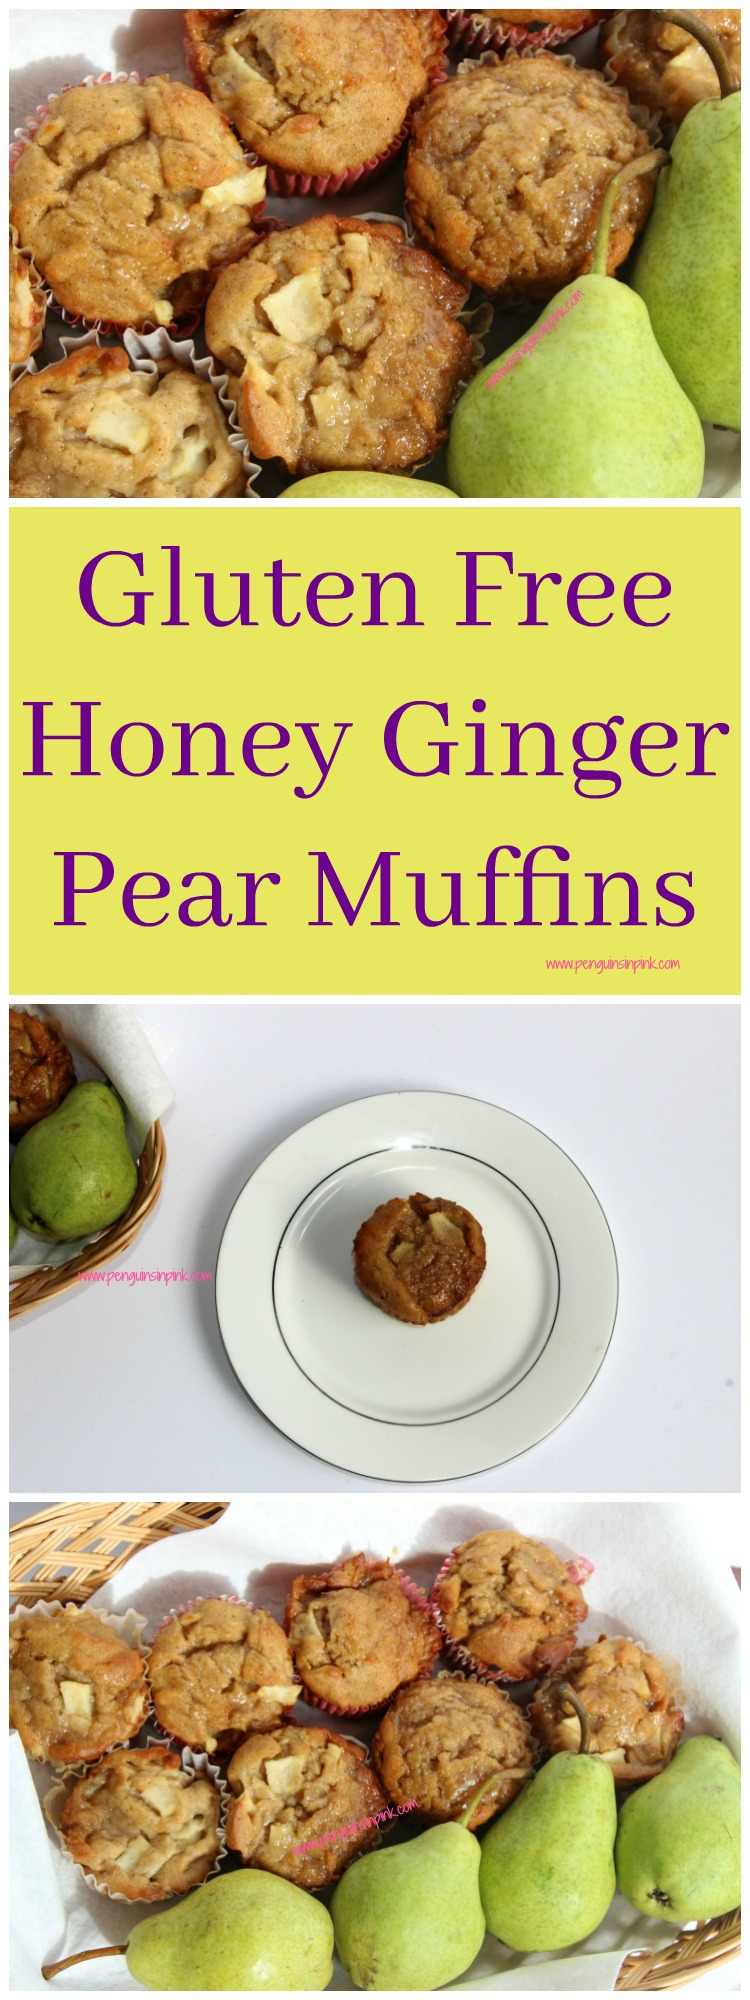 Gluten Free Honey Ginger Pear Muffins - Spicy ginger and sweet honey combine to make a delectable muffin topped with a ginger and brown sugar crumble